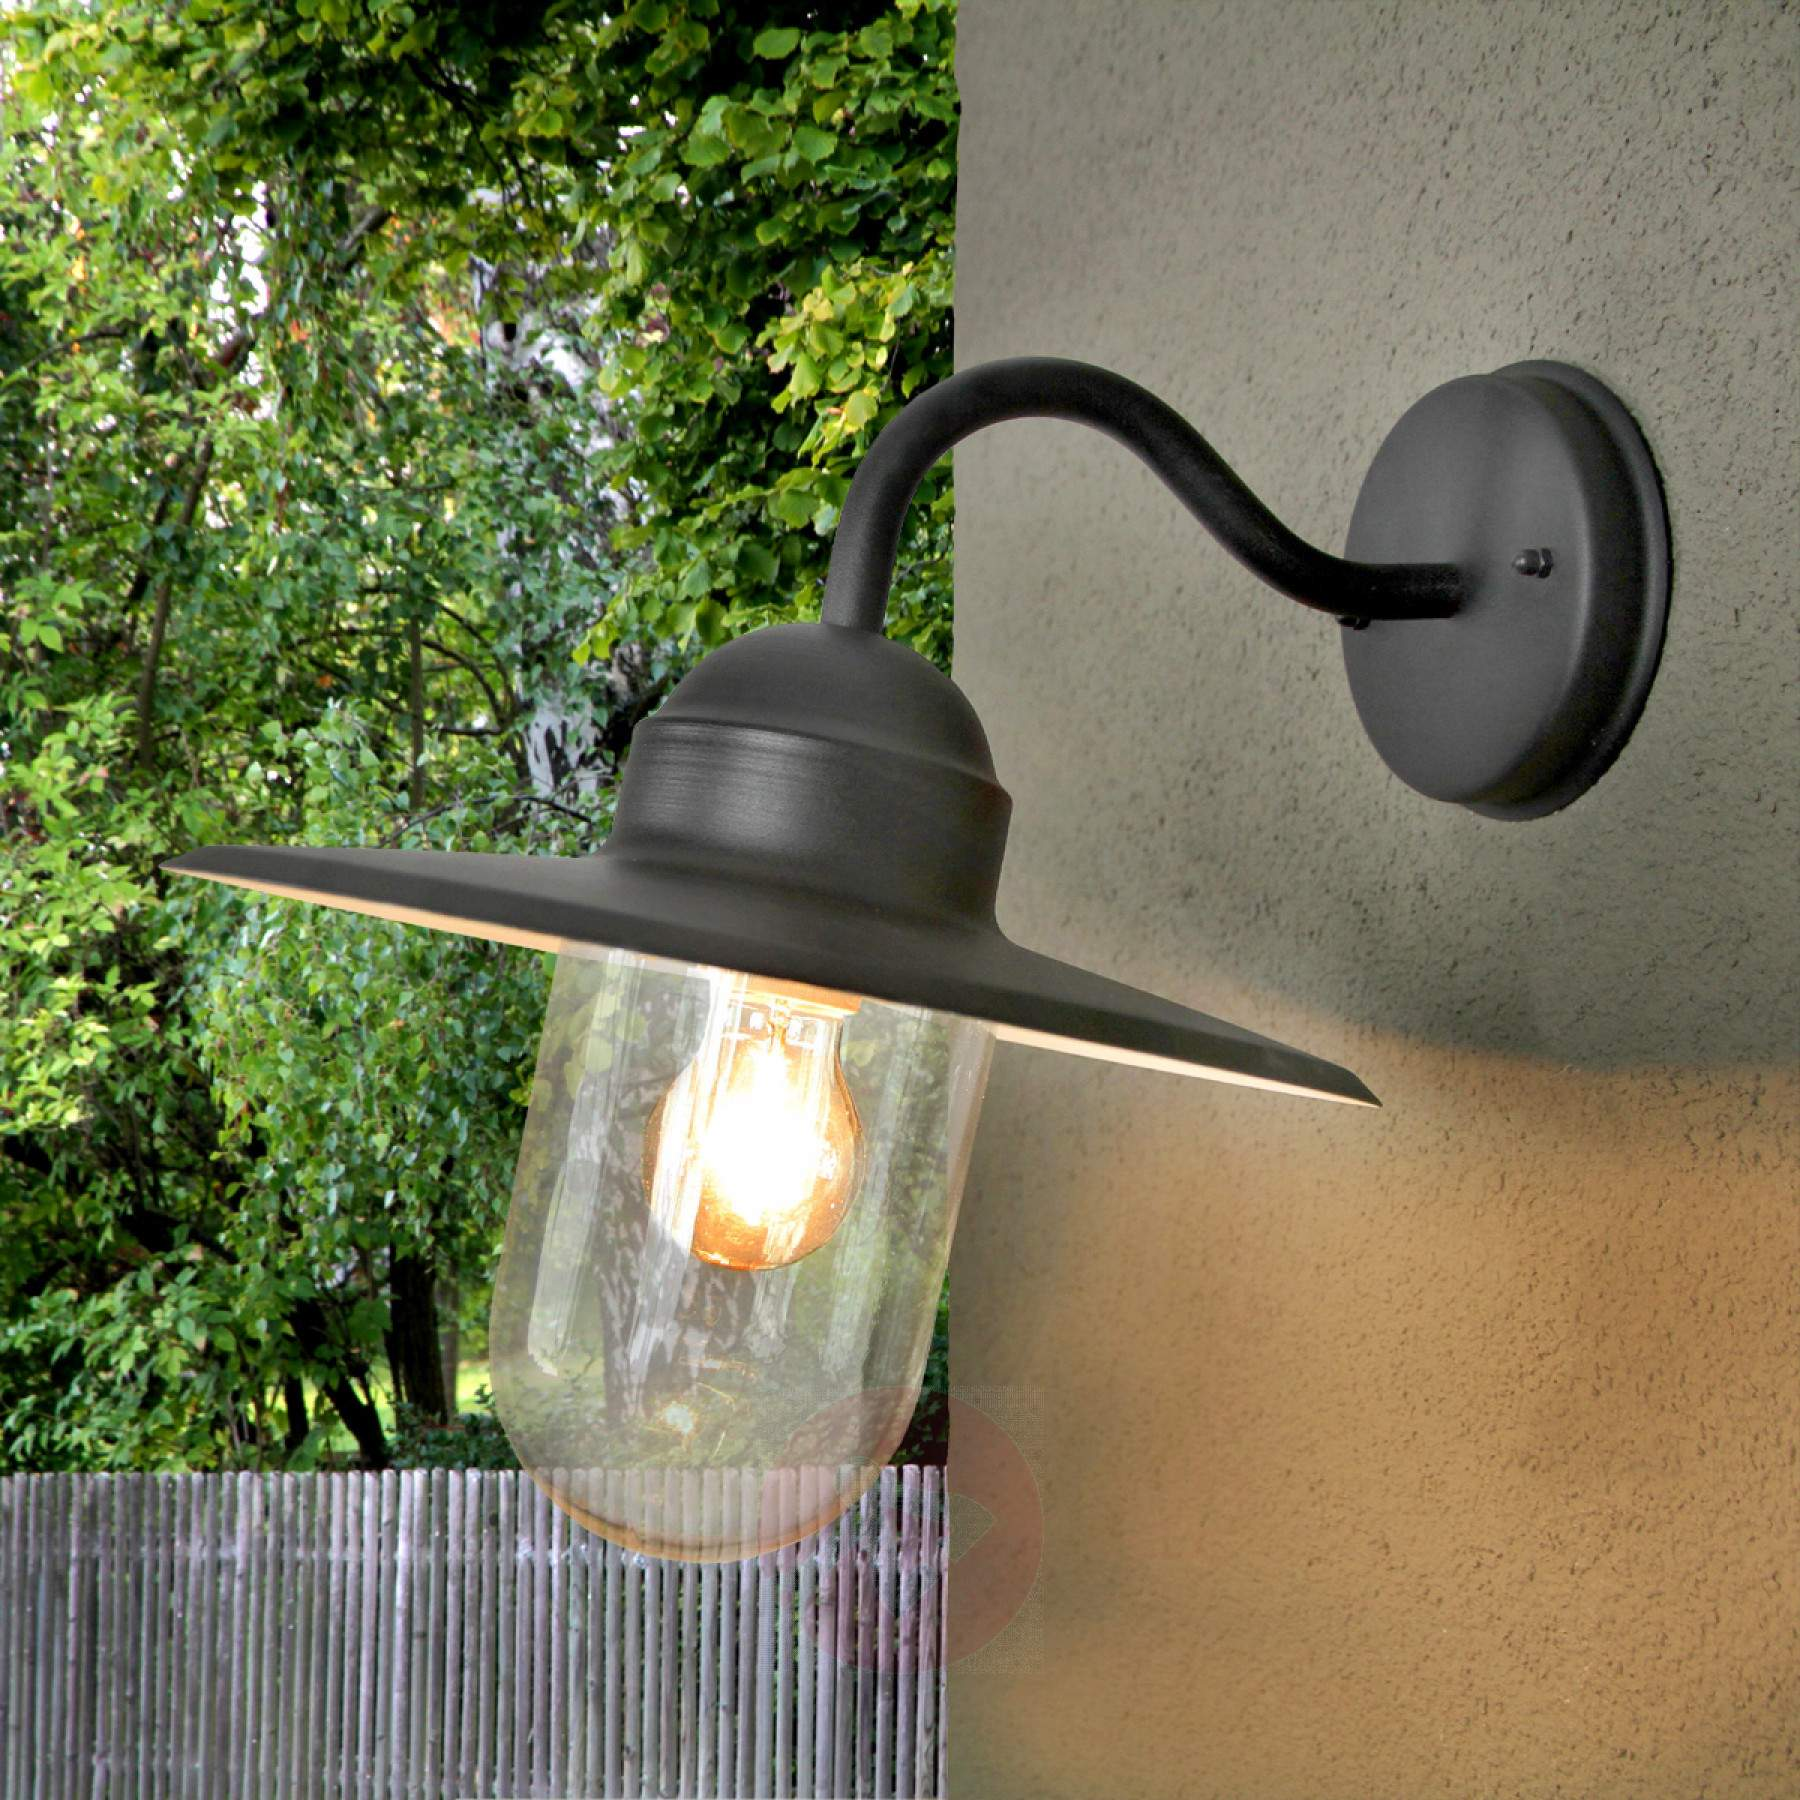 country house lighting ... black country house style outdoor wall light filip-9972025-09 ... TMIJSDO